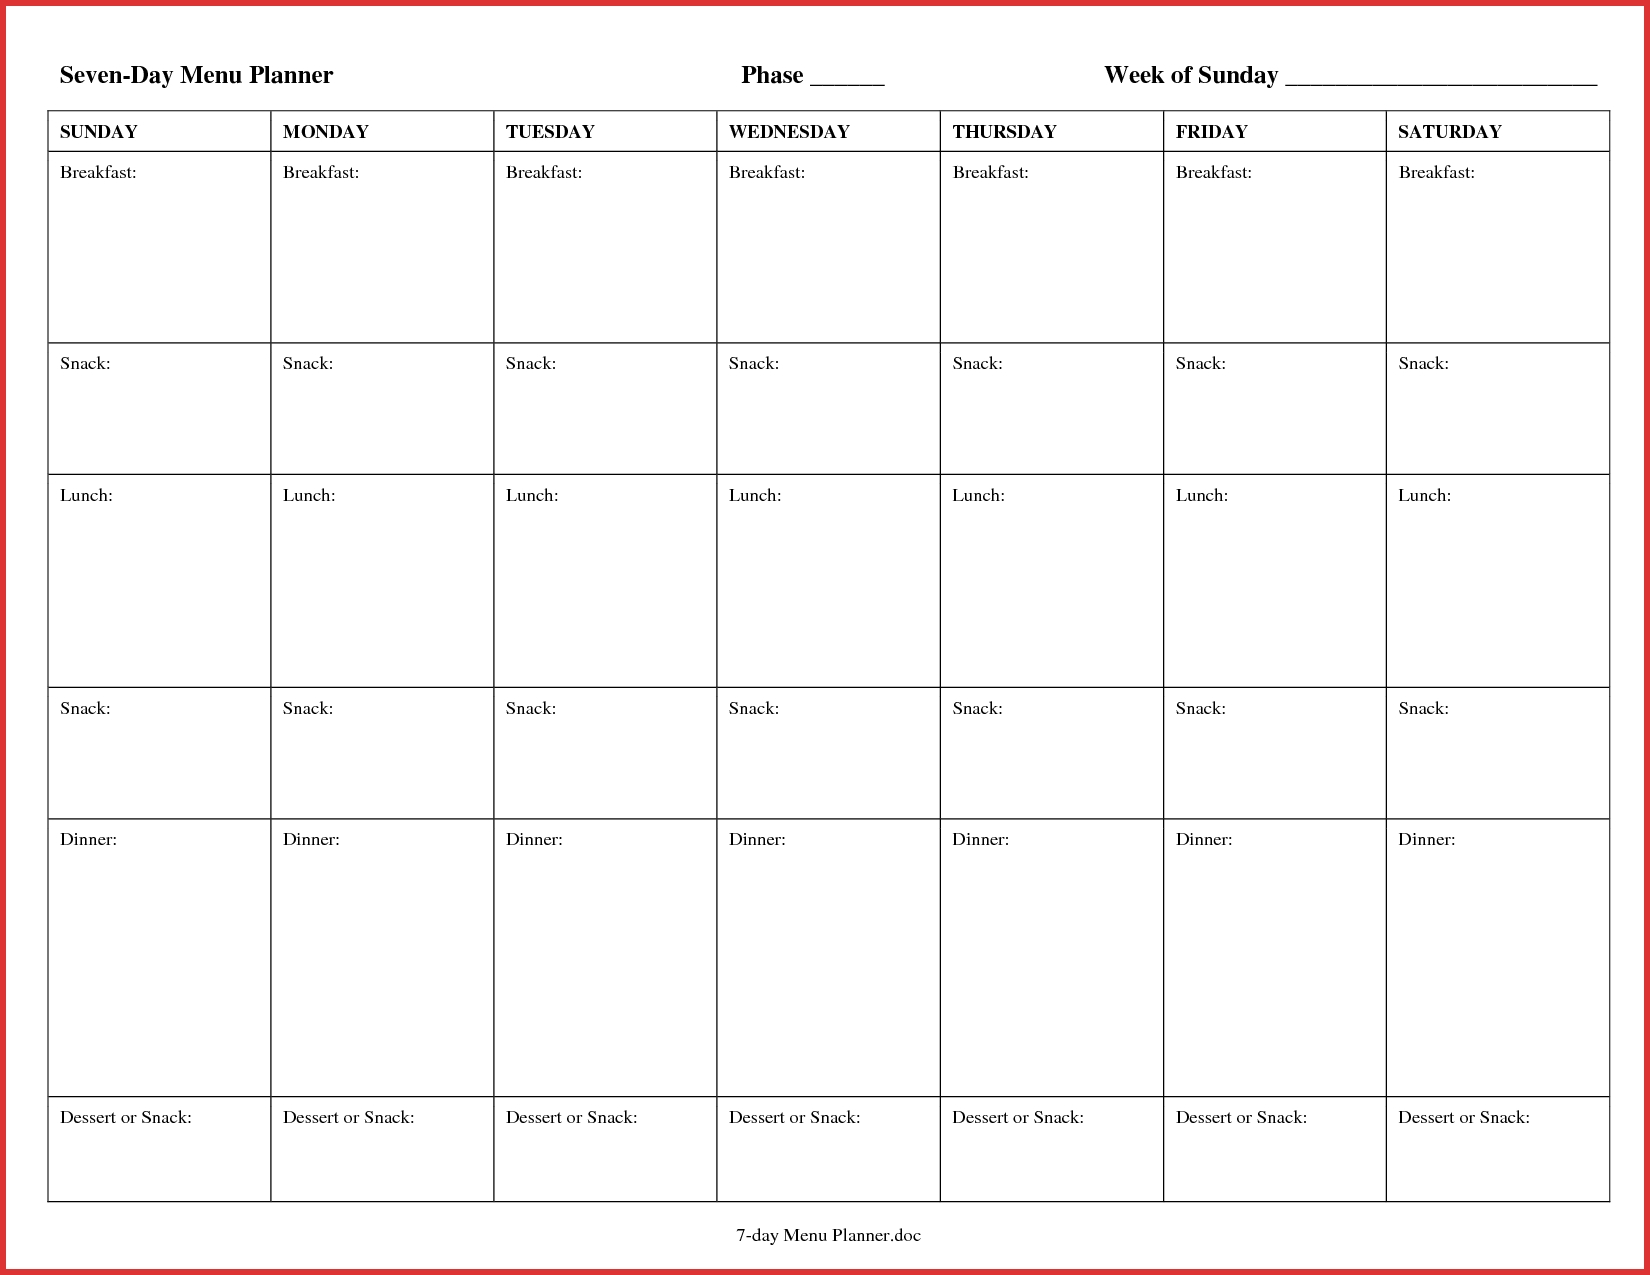 7 Day Menu Planner - Maco.palmex.co regarding 7 Day Meal Planner Template